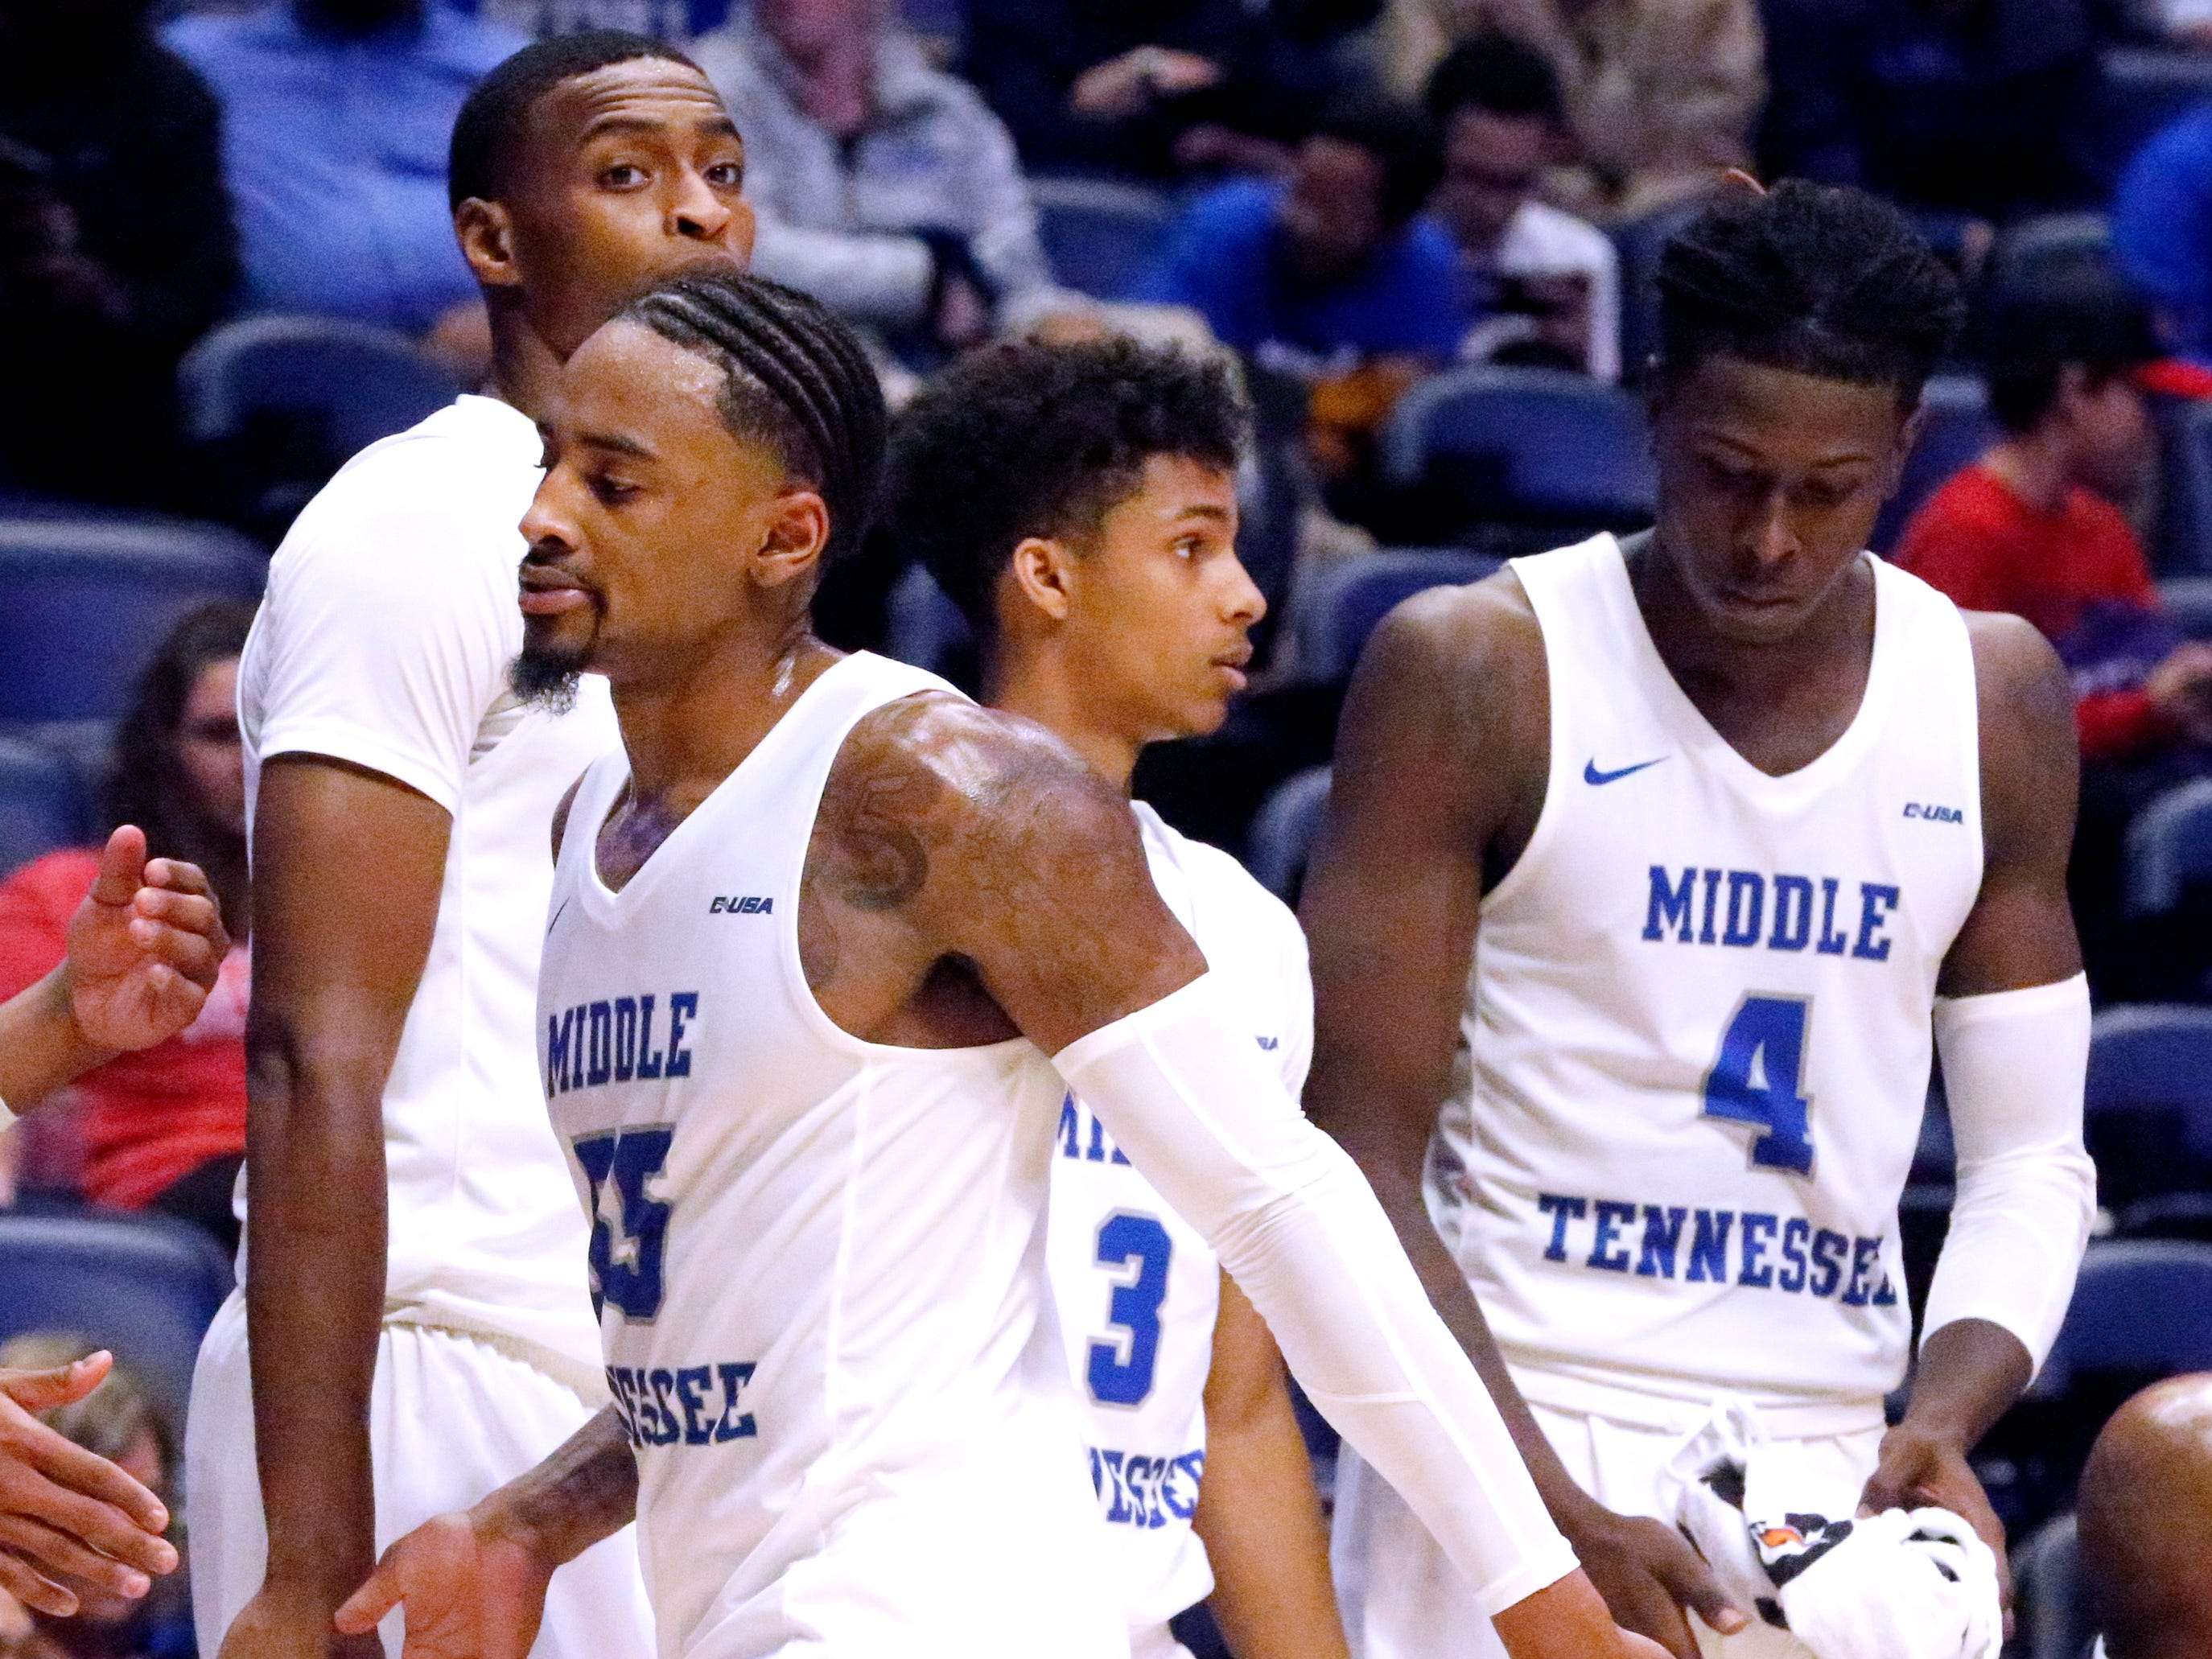 MTSU's guard Antonio Green (55) comes out of the game against Ole Miss on Friday Dec. 21, 2018, at Bridgestone Arena.